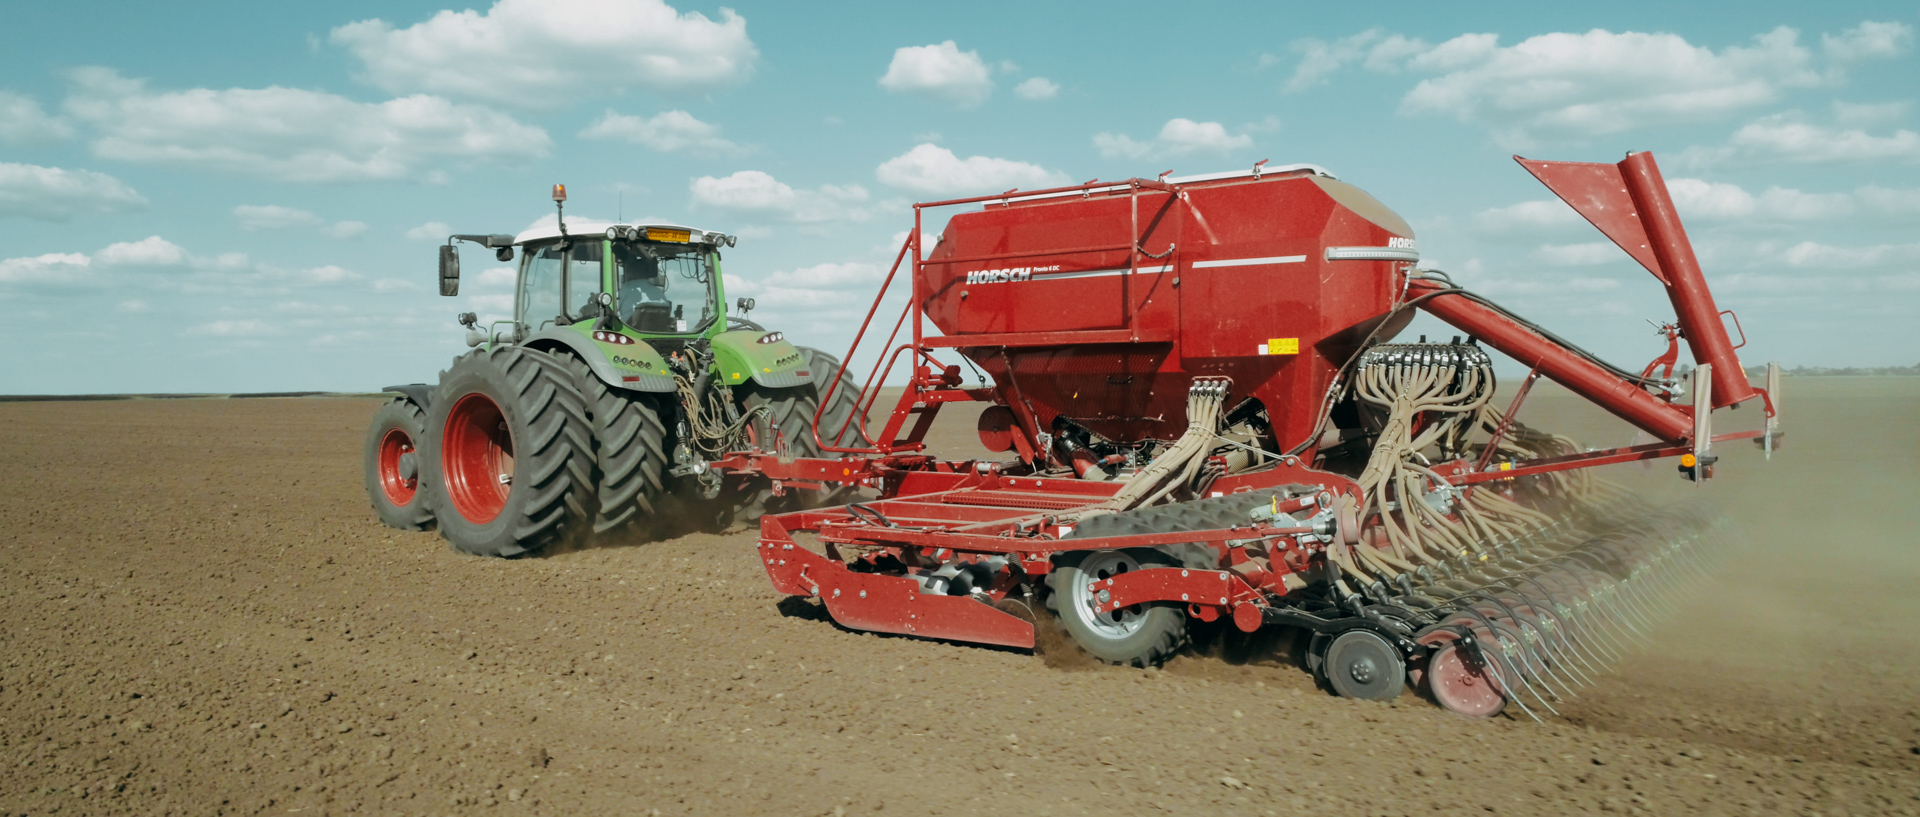 fendt tractor horsch mewi services video by popotam productions video agency timisoara after color grading